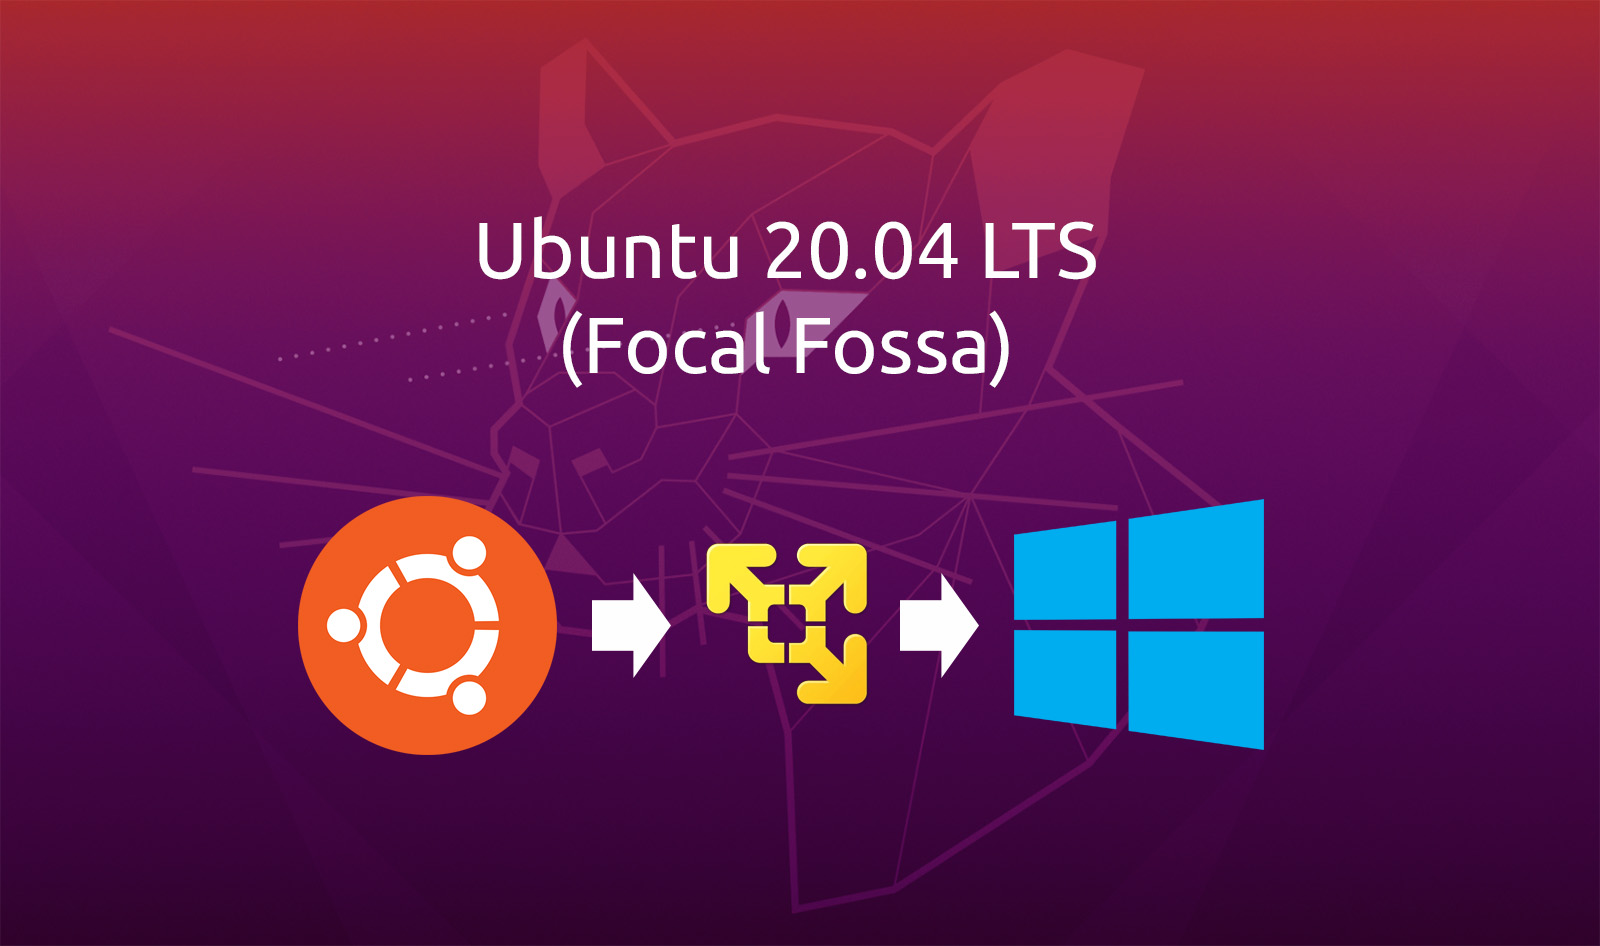 How To Install Ubuntu 20.04 LTS On Windows Using VMware Workstation Player